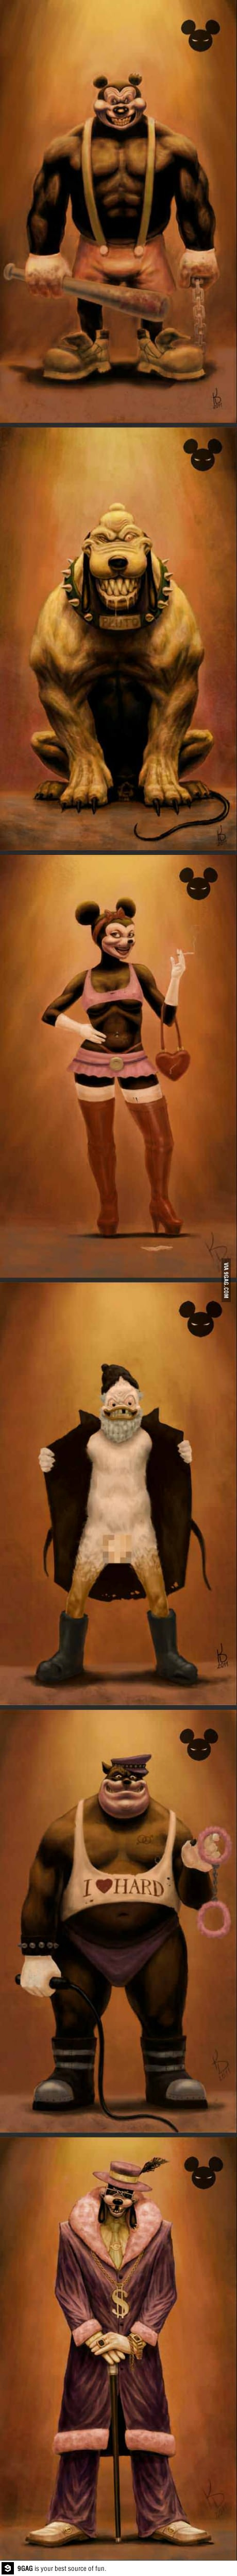 If Disney characters were bad